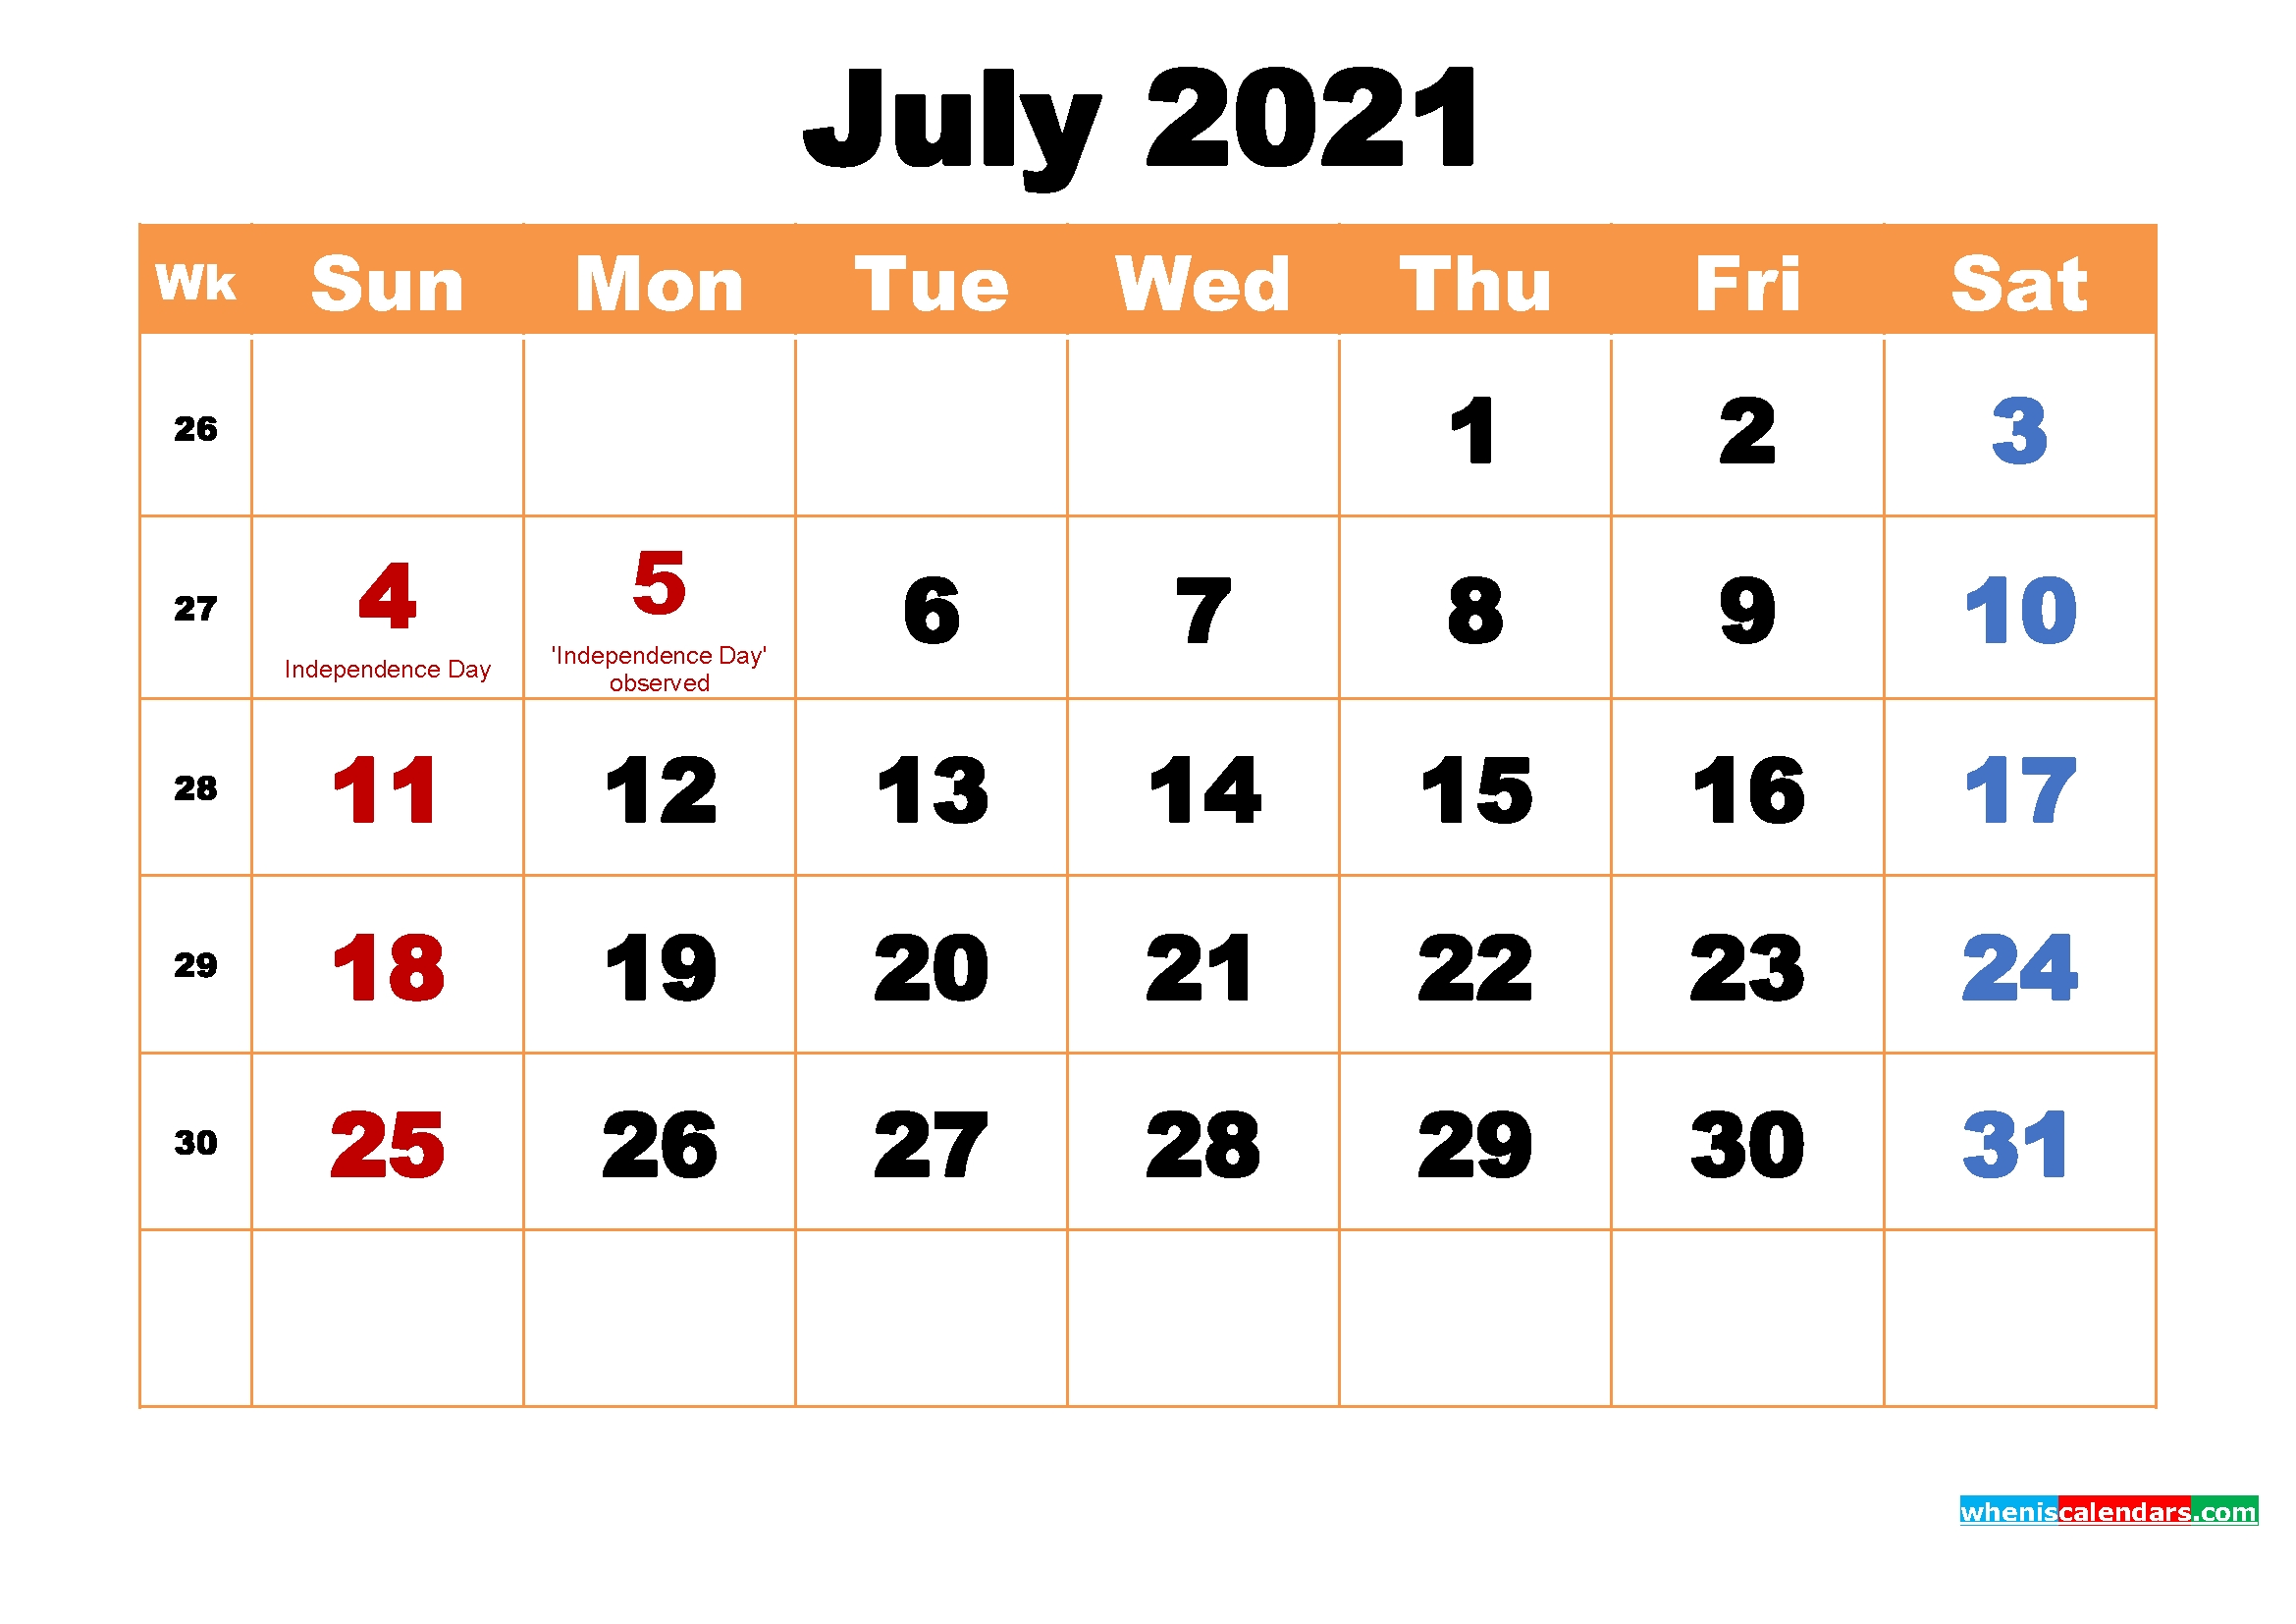 July 2021 Printable Monthly Calendar With Holidays | Free Printable 2020 Calendar With Holidays July 2021 Calendar Word